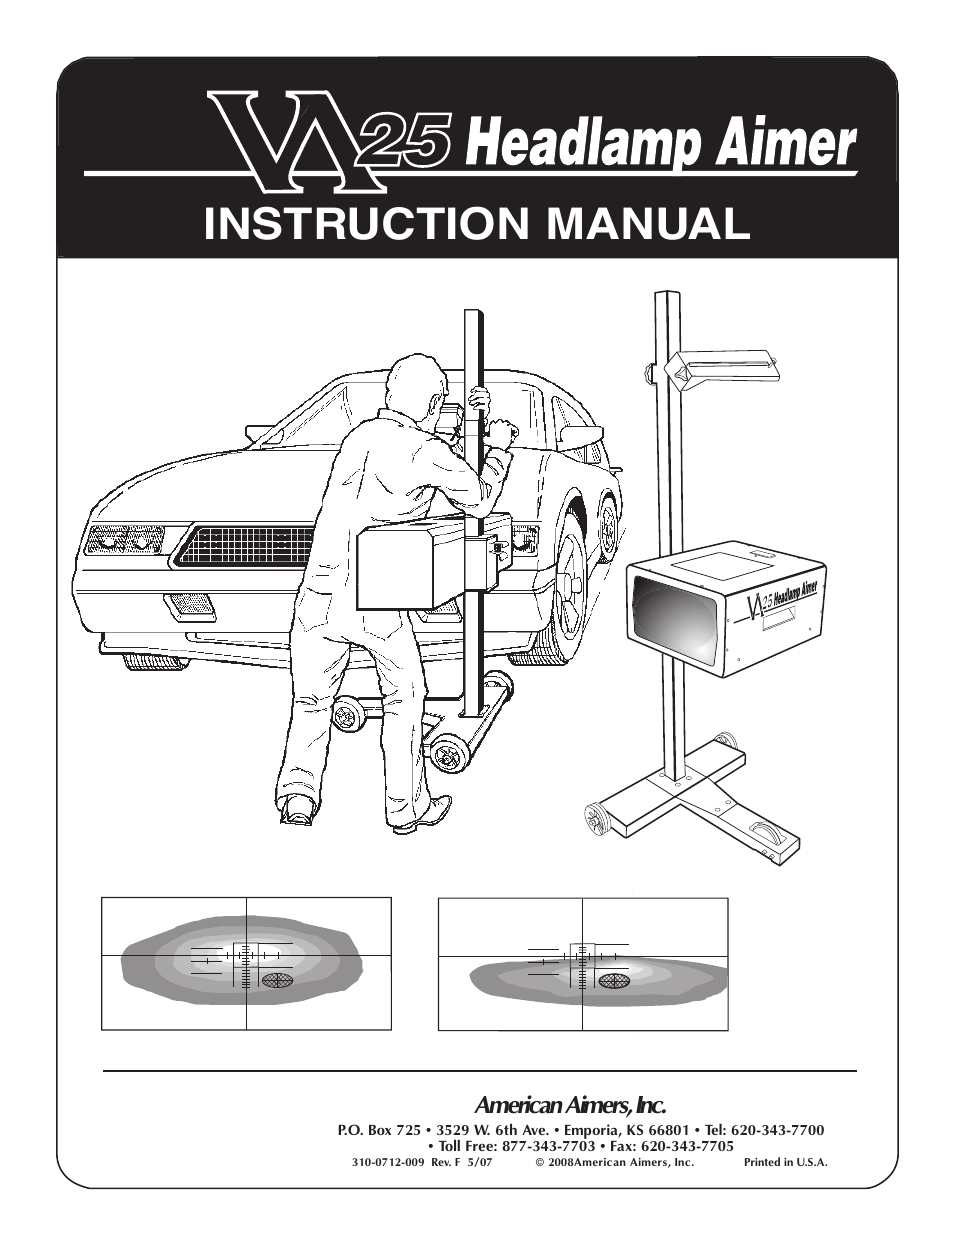 American Aimers VA 25 Optical Headlight Aimer User Manual